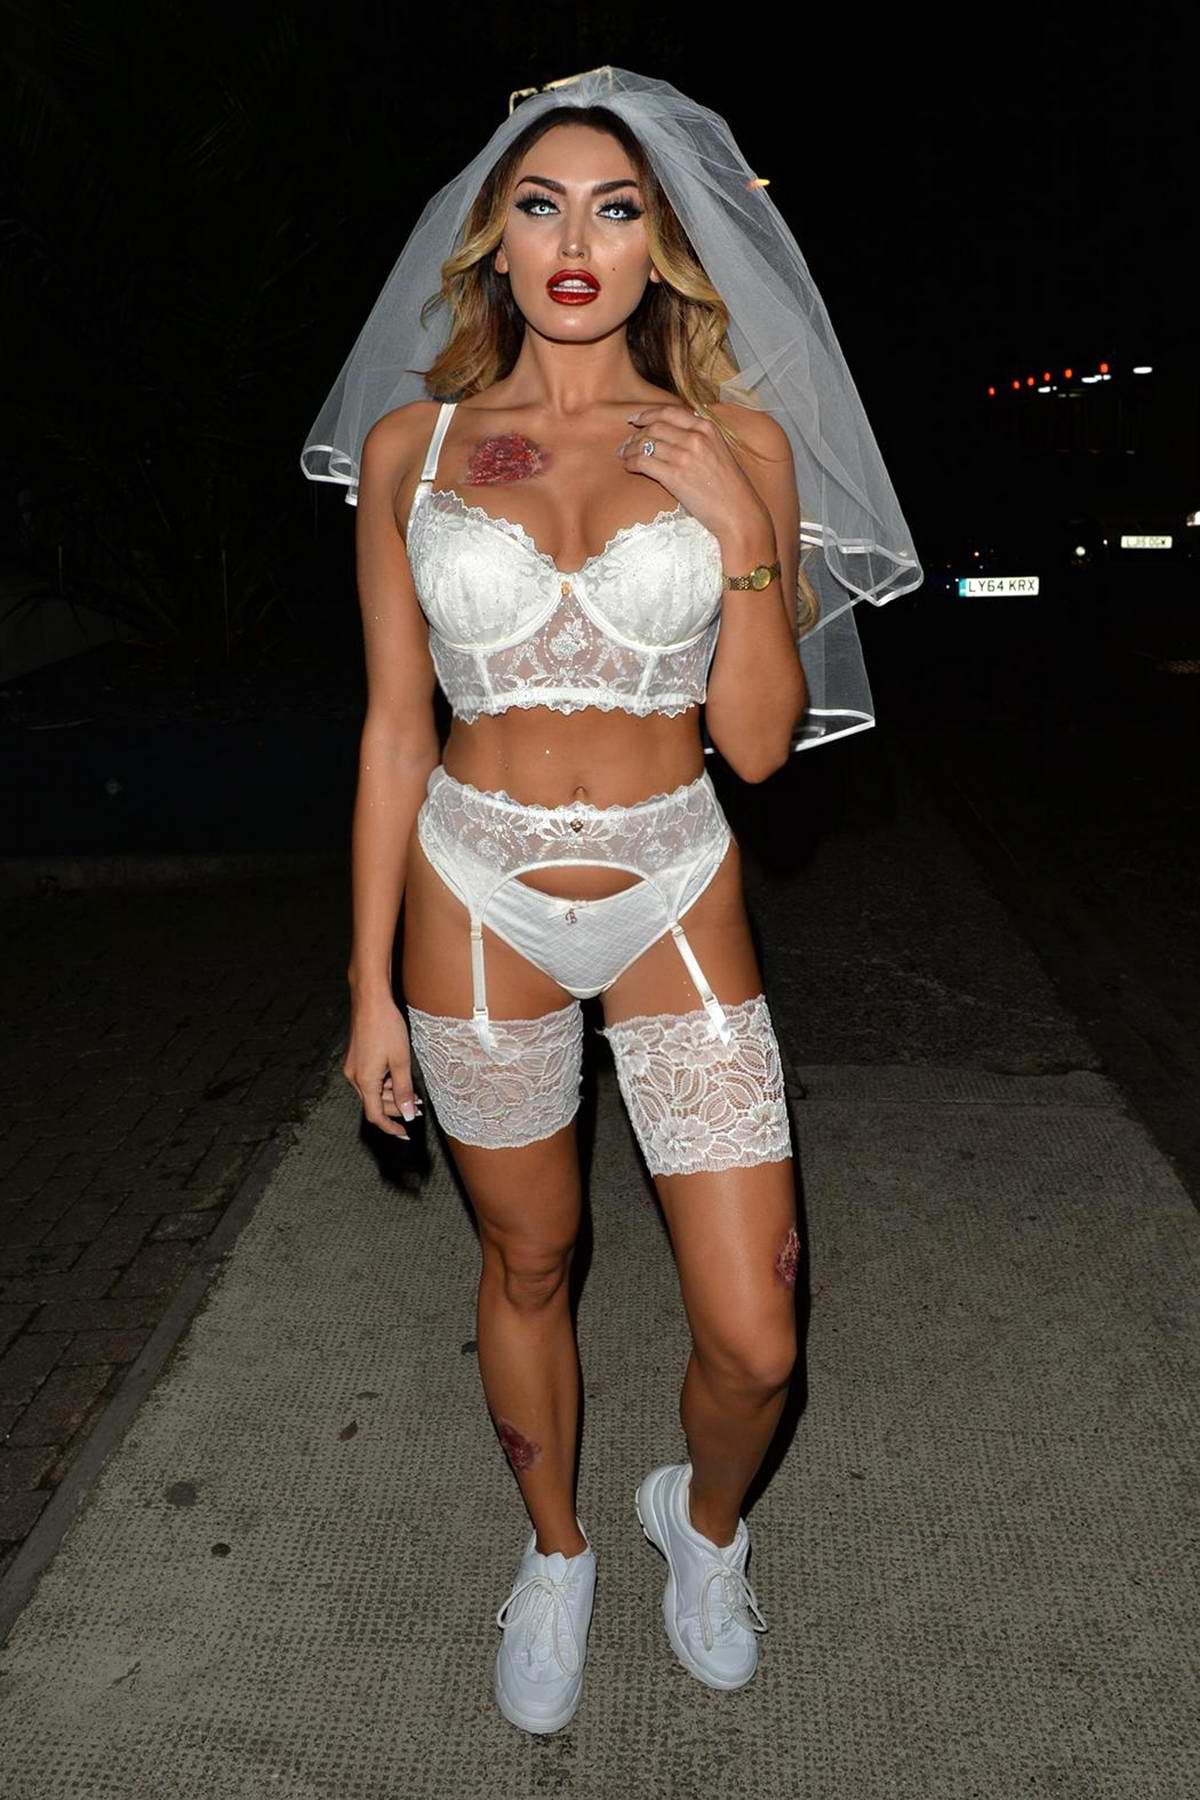 Zaralena Jackson seen at Swankeys Halloween Party in London, UK